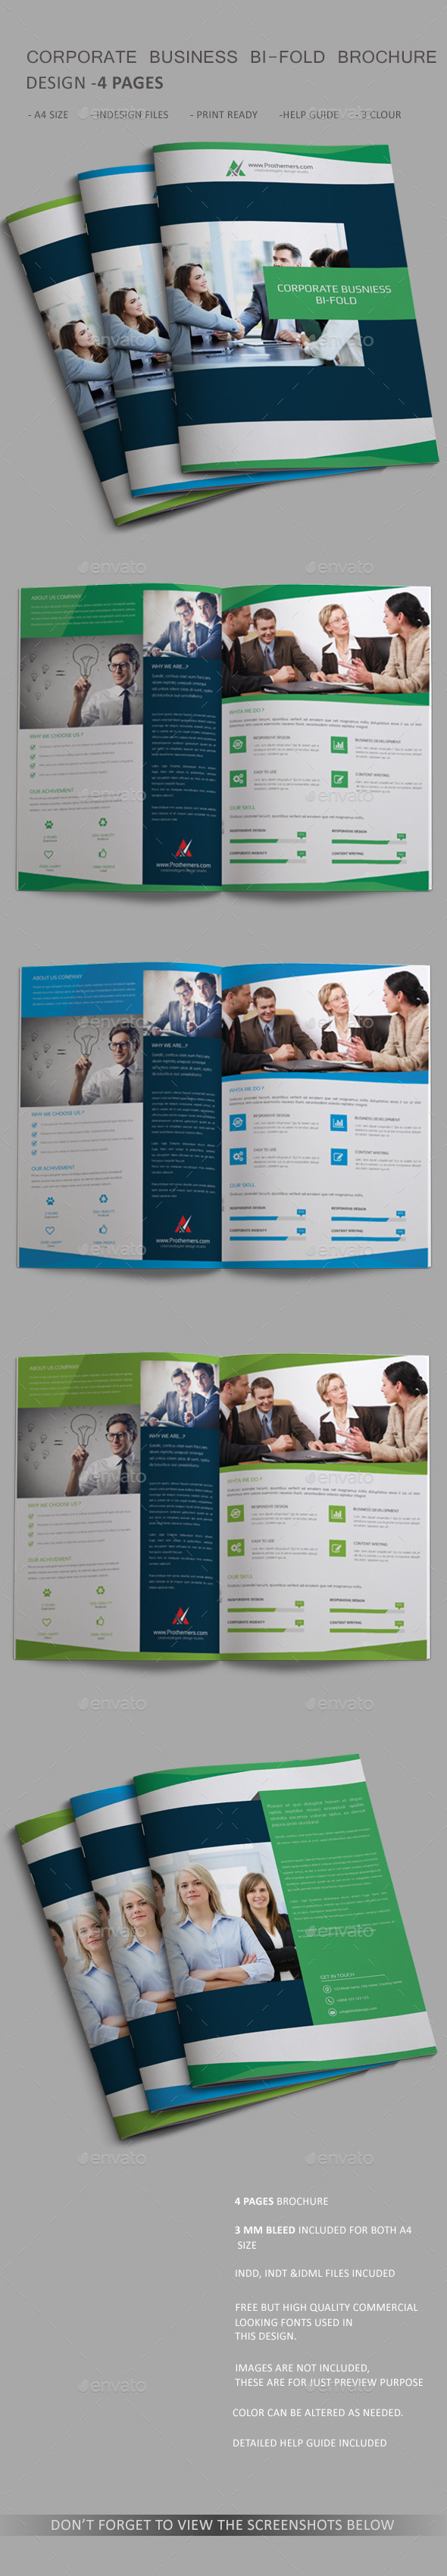 GraphicRiver Corporate Bi-fold Brochure 4 Page 11093694